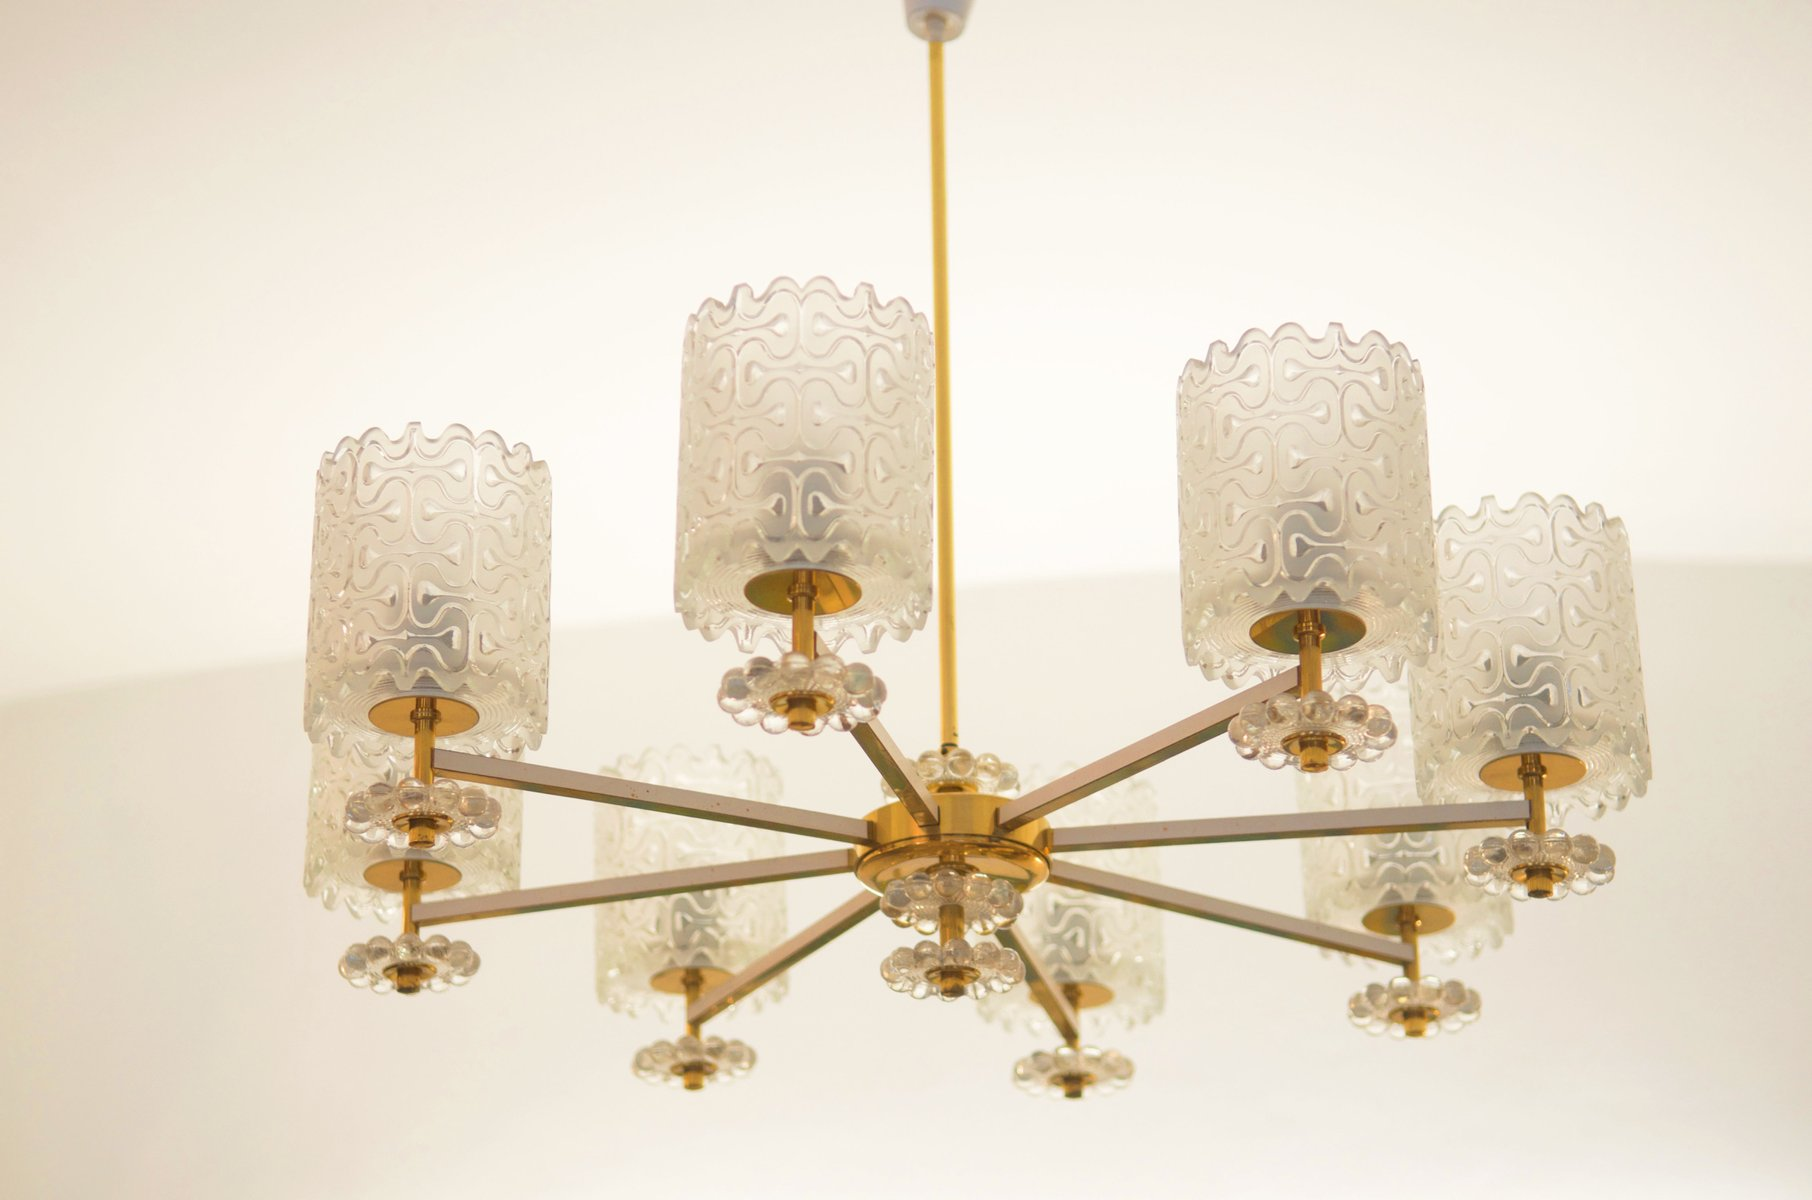 Vintage brass and glass chandelier from austria 1970s for sale at vintage brass and glass chandelier from austria 1970s for sale at pamono mozeypictures Images